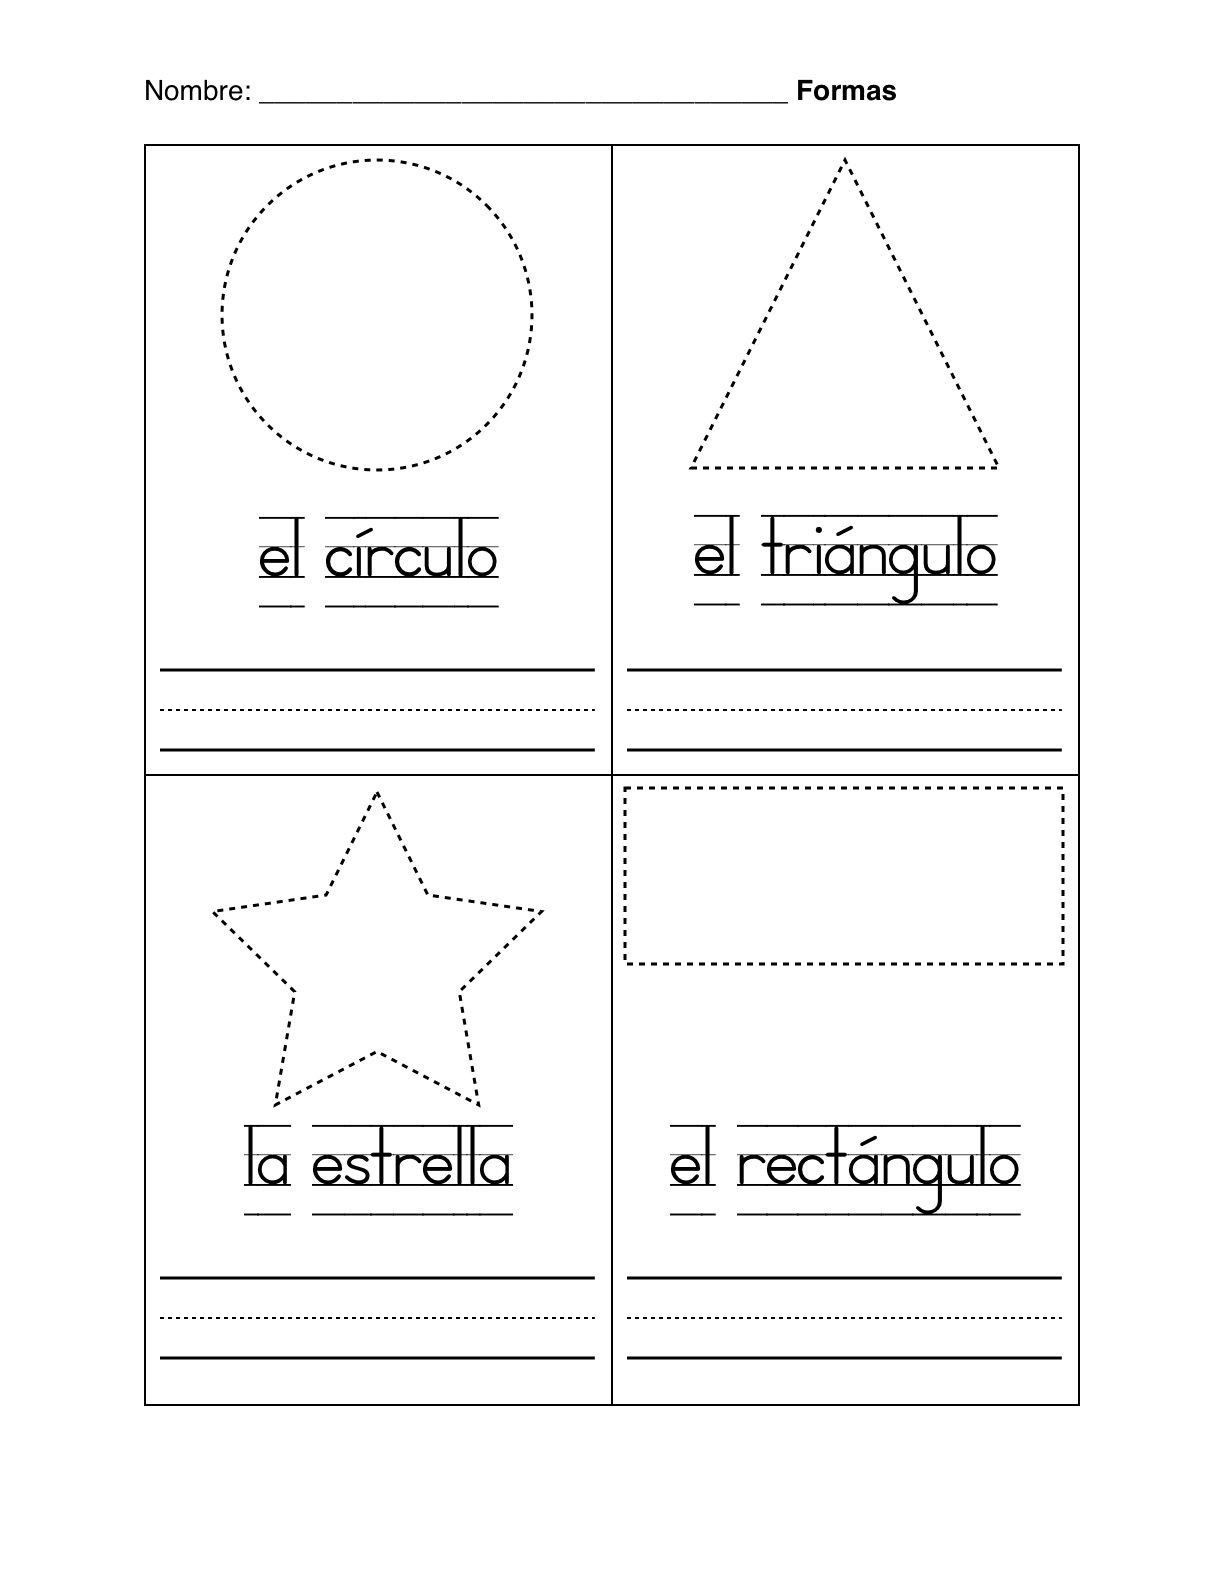 Spanish Kindergarten Worksheets Basic Shapes In Spanish formas Basicas Worksheet